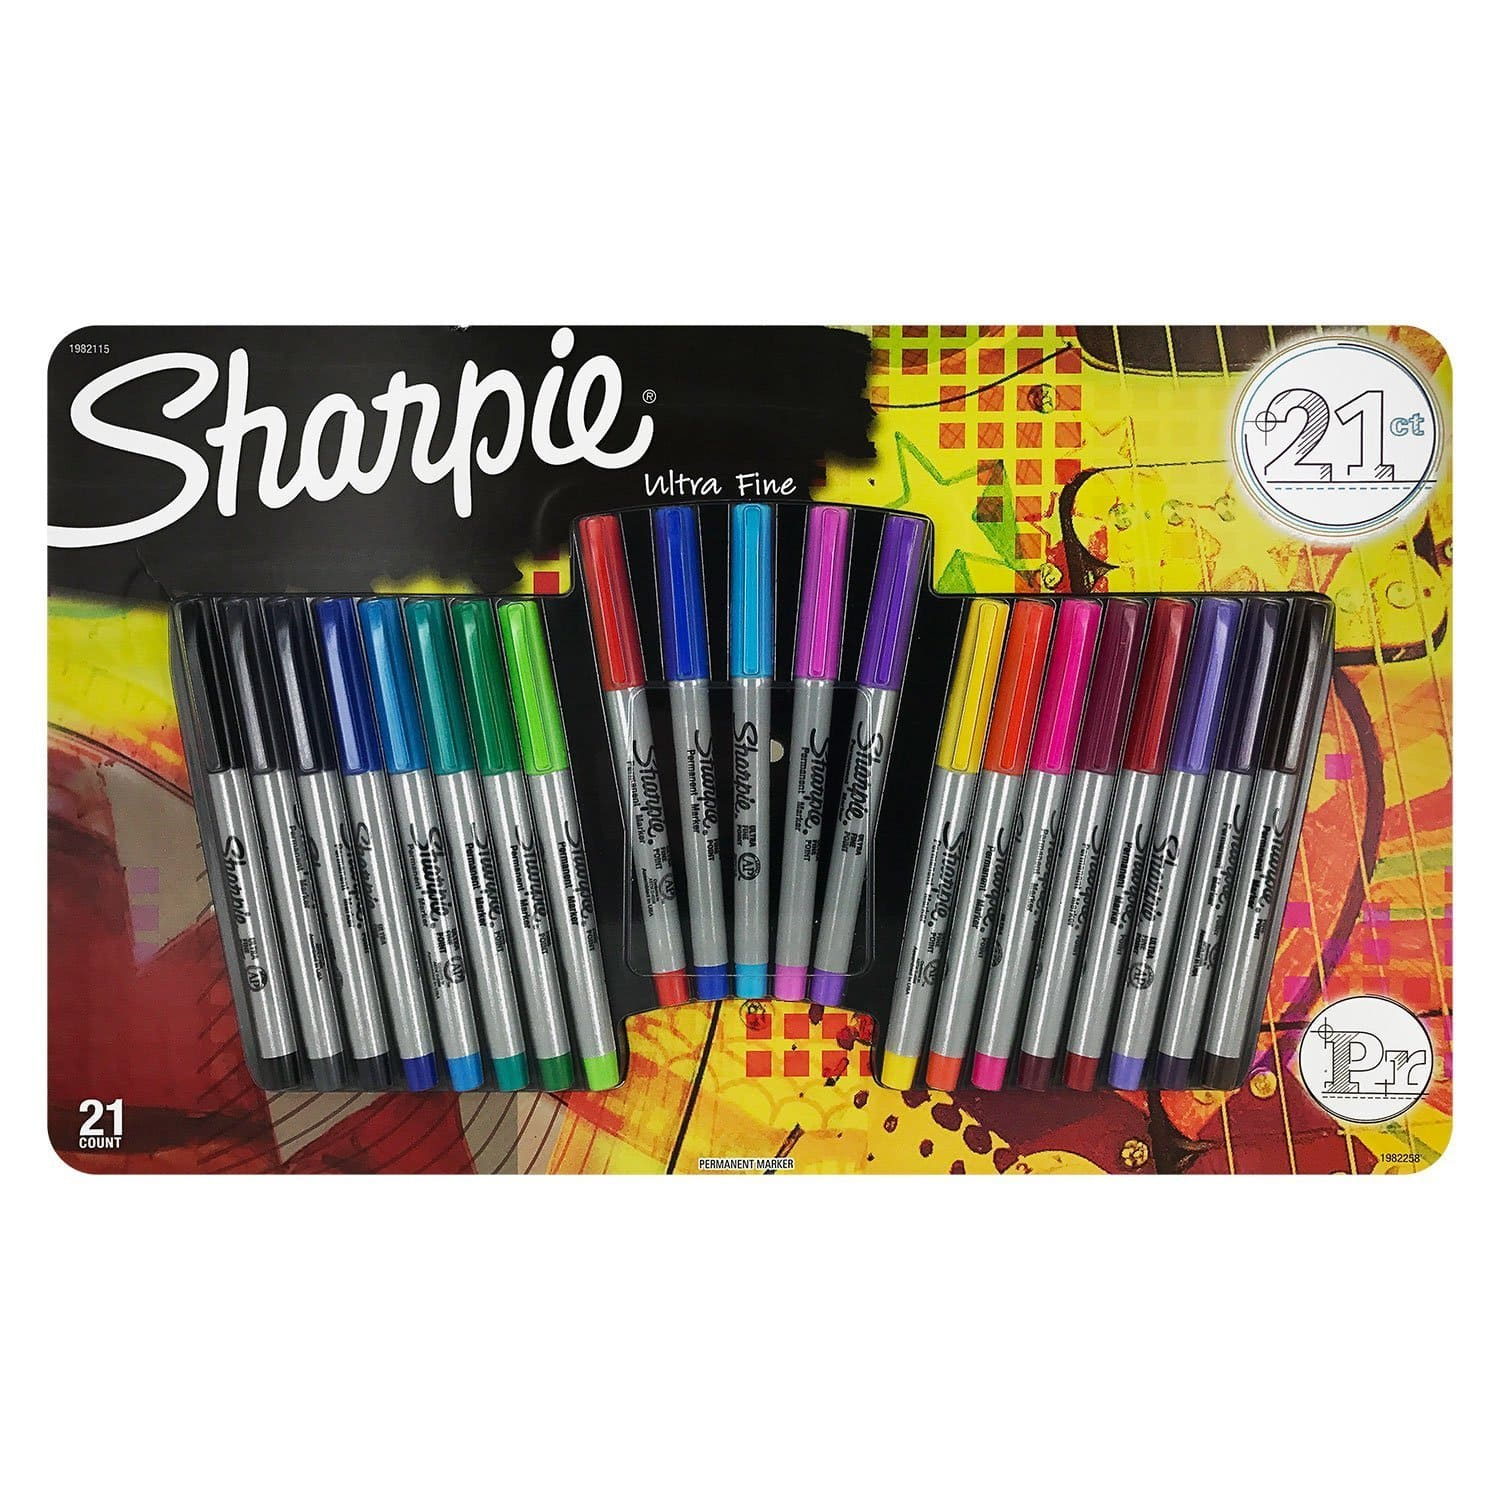 21-Count Sharpie Ultra Fine Point Permanent Markers for $8.68